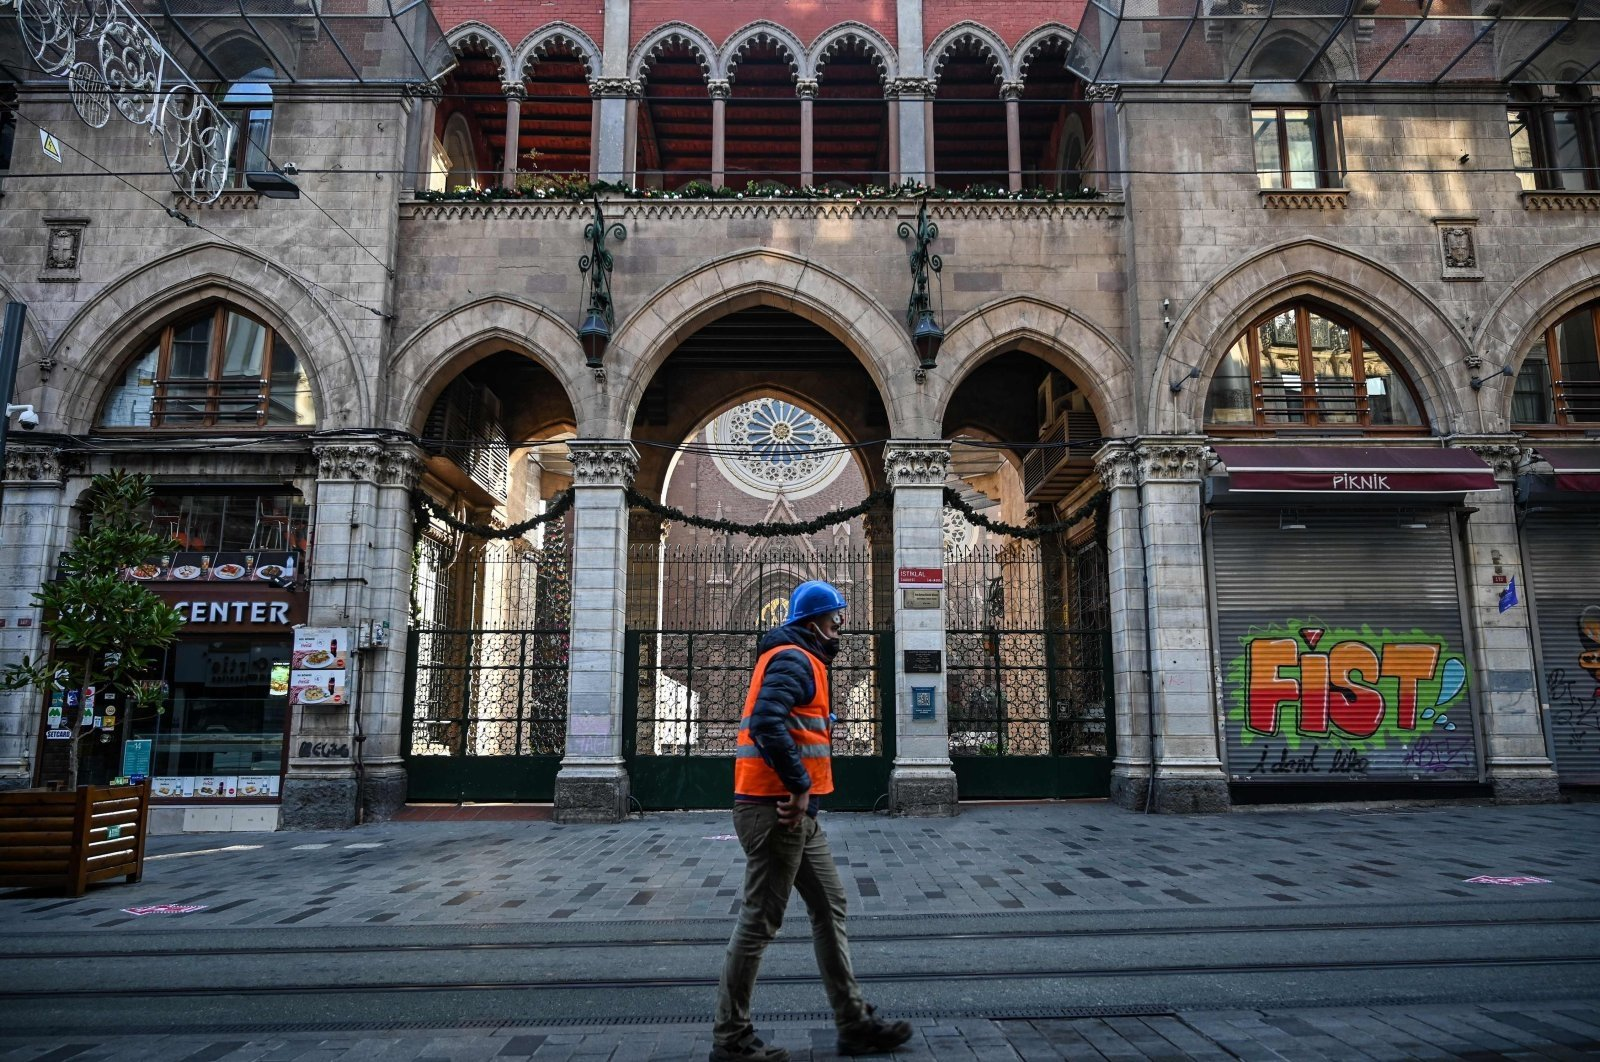 A construction worker walks down a deserted Istiklal Avenue in Istanbul during a weekend lockdown to curb the spread of COVID-19, Beyoğlu, Istanbul, Turkey, Dec. 5, 2020. (AFP Photo)